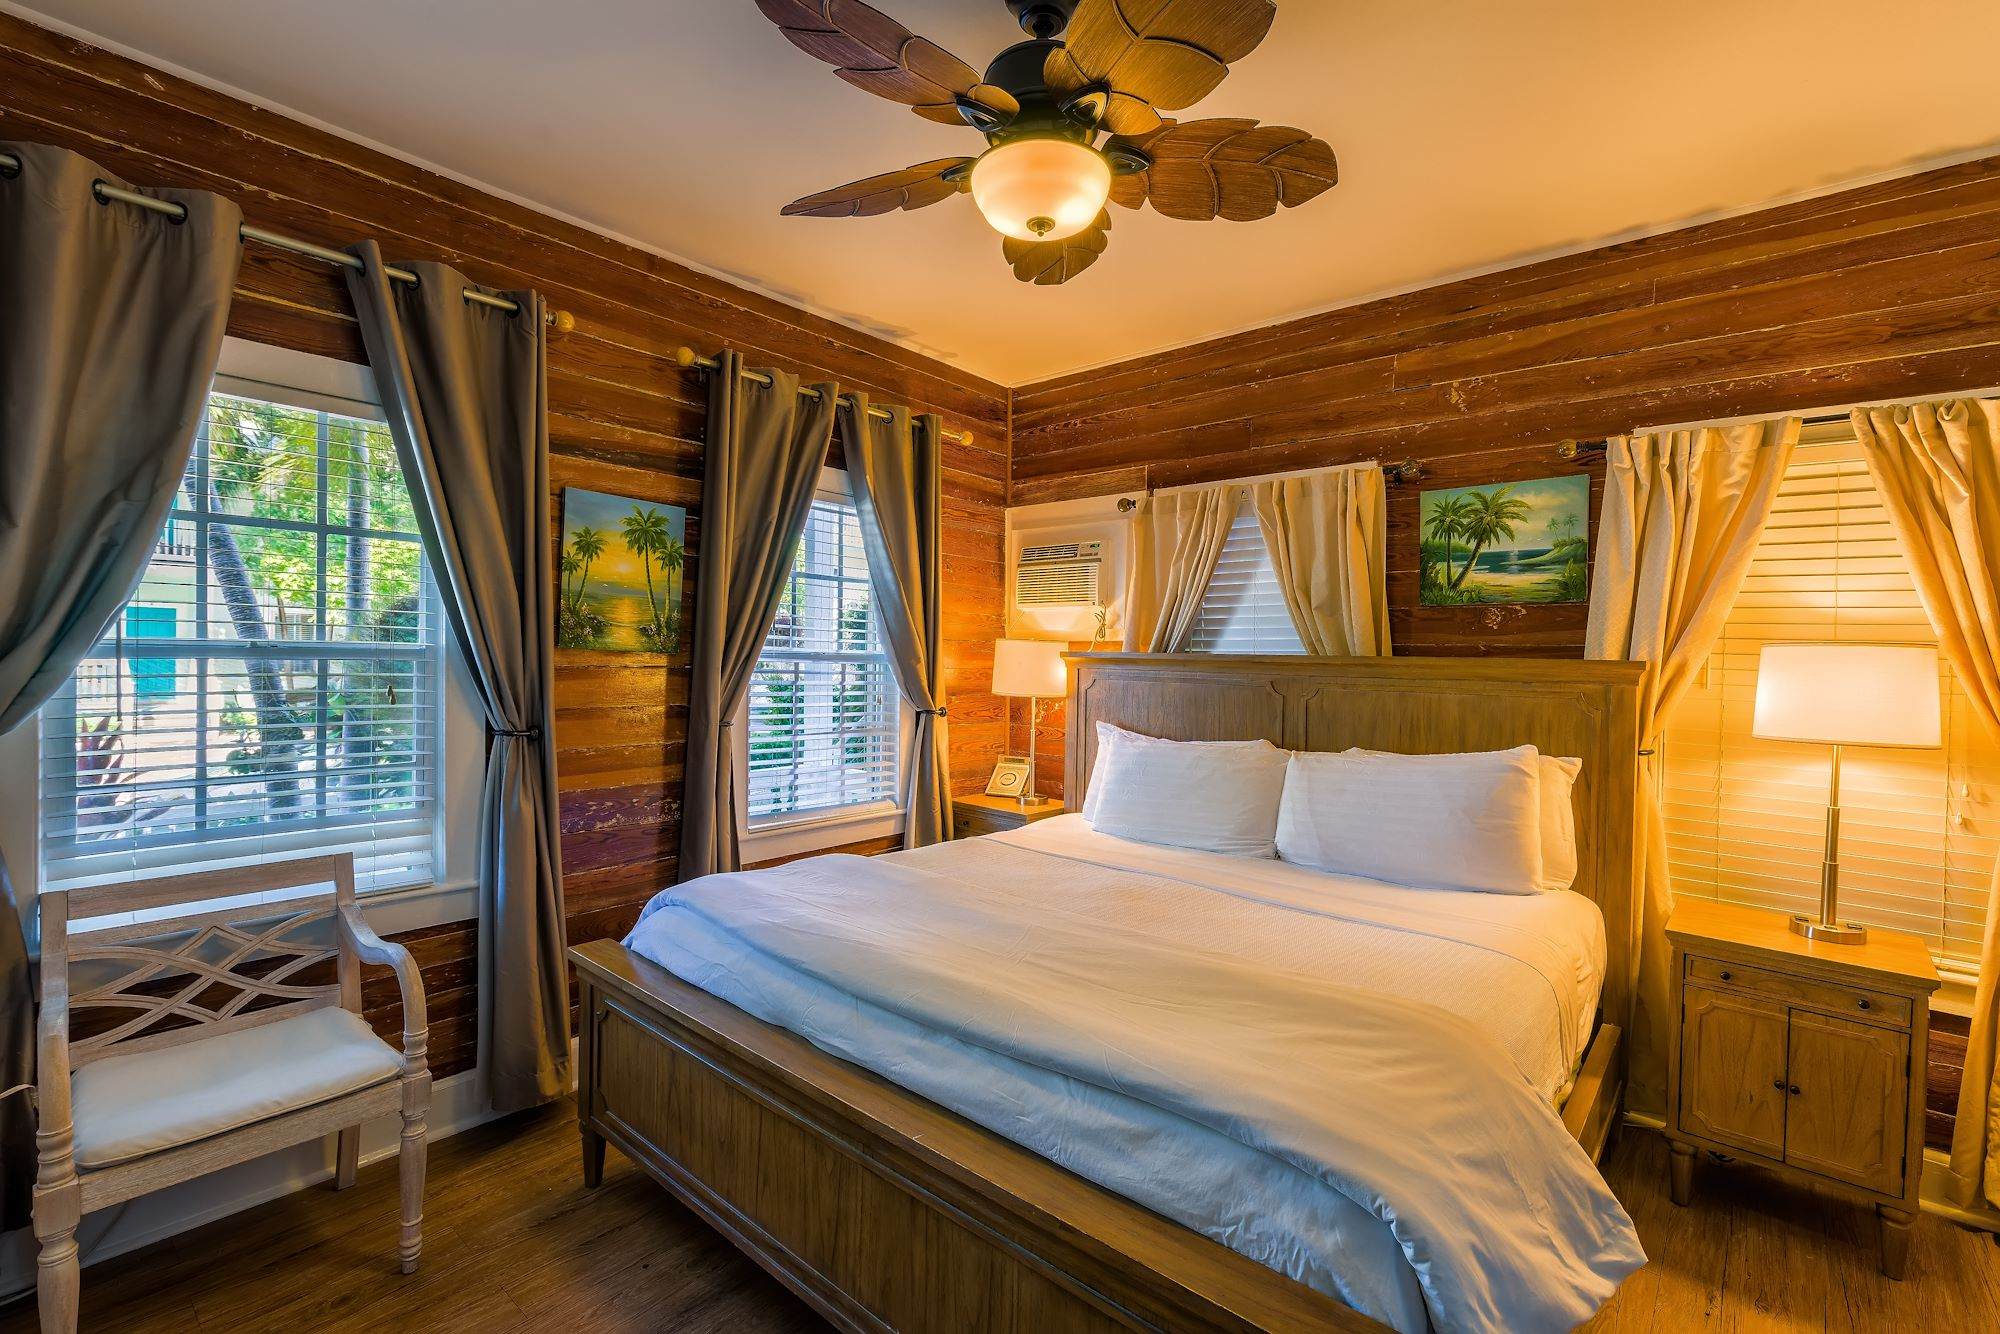 Guest Rooms and Suites of our Key West accommodations